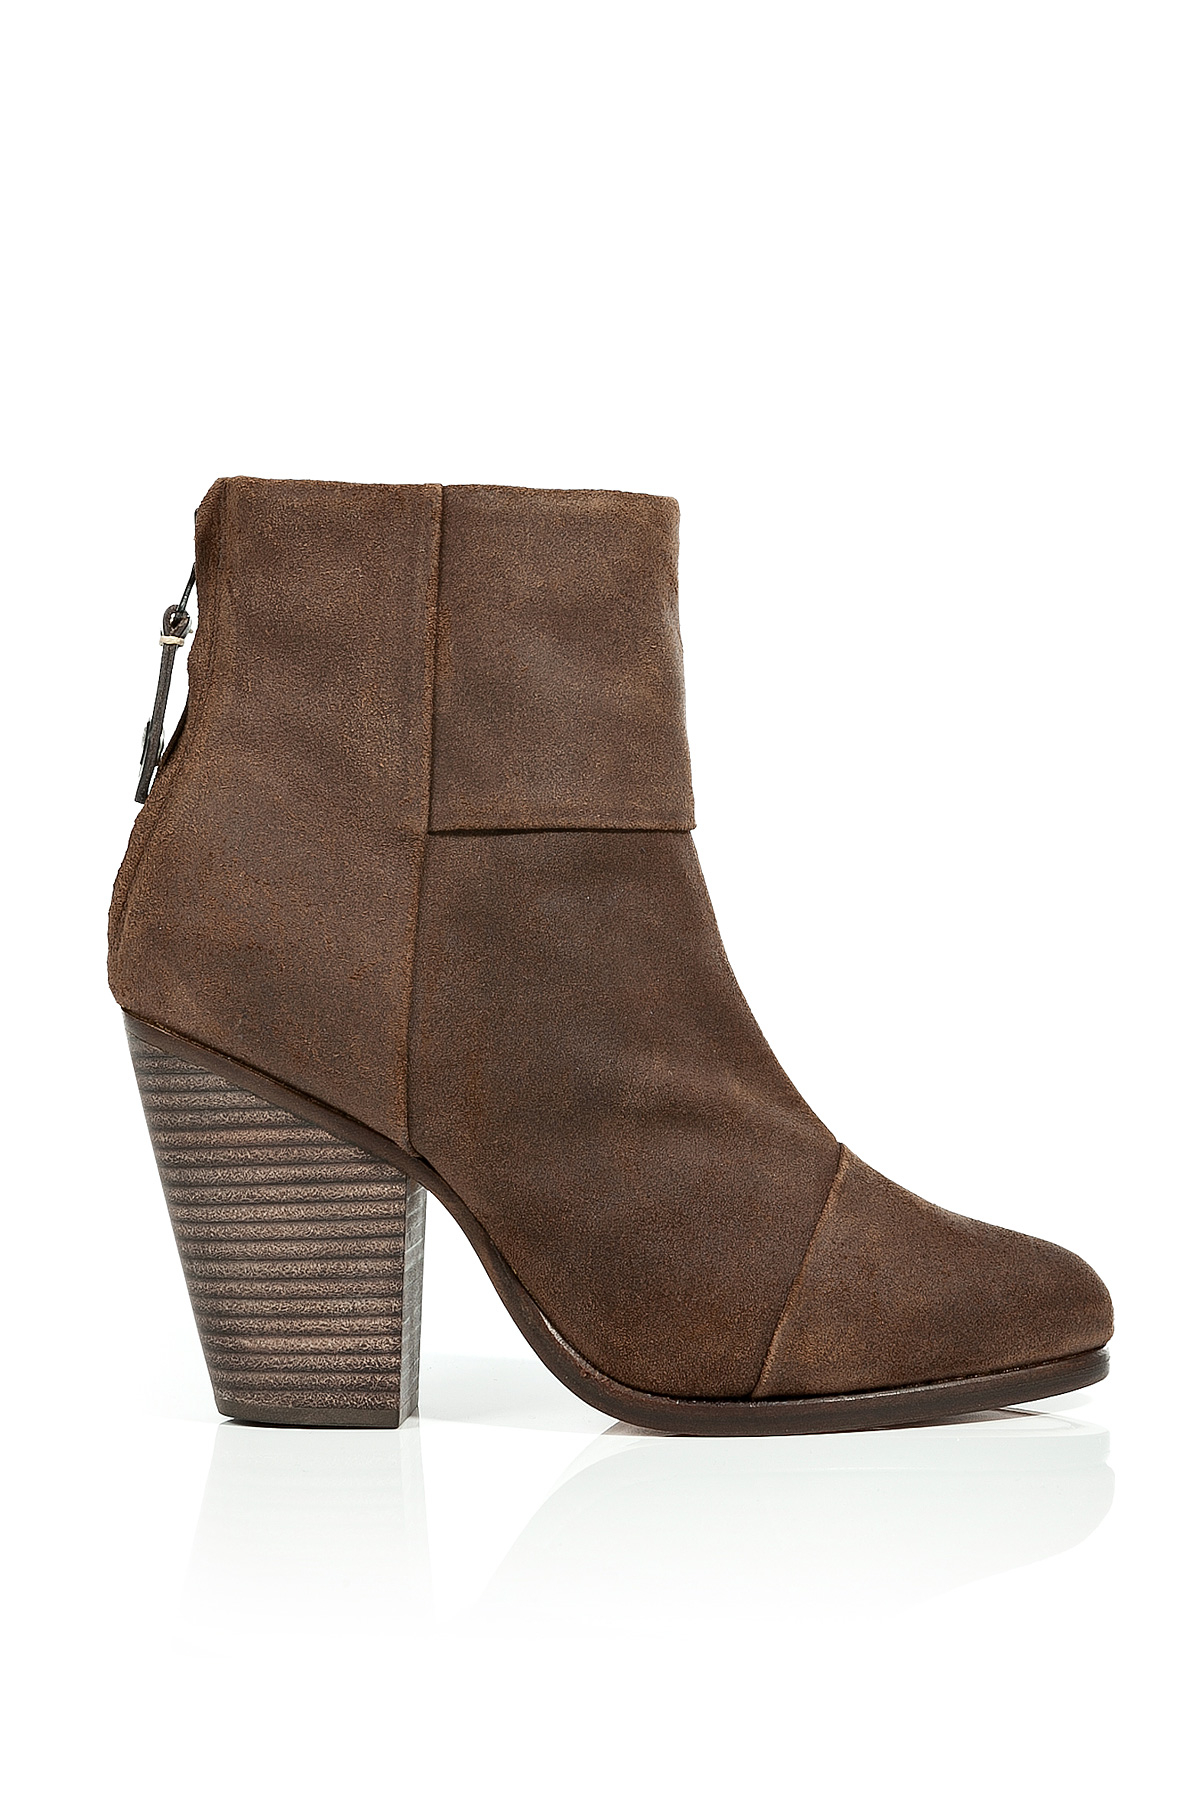 rag bone classic suede newbury ankle boots in white lyst